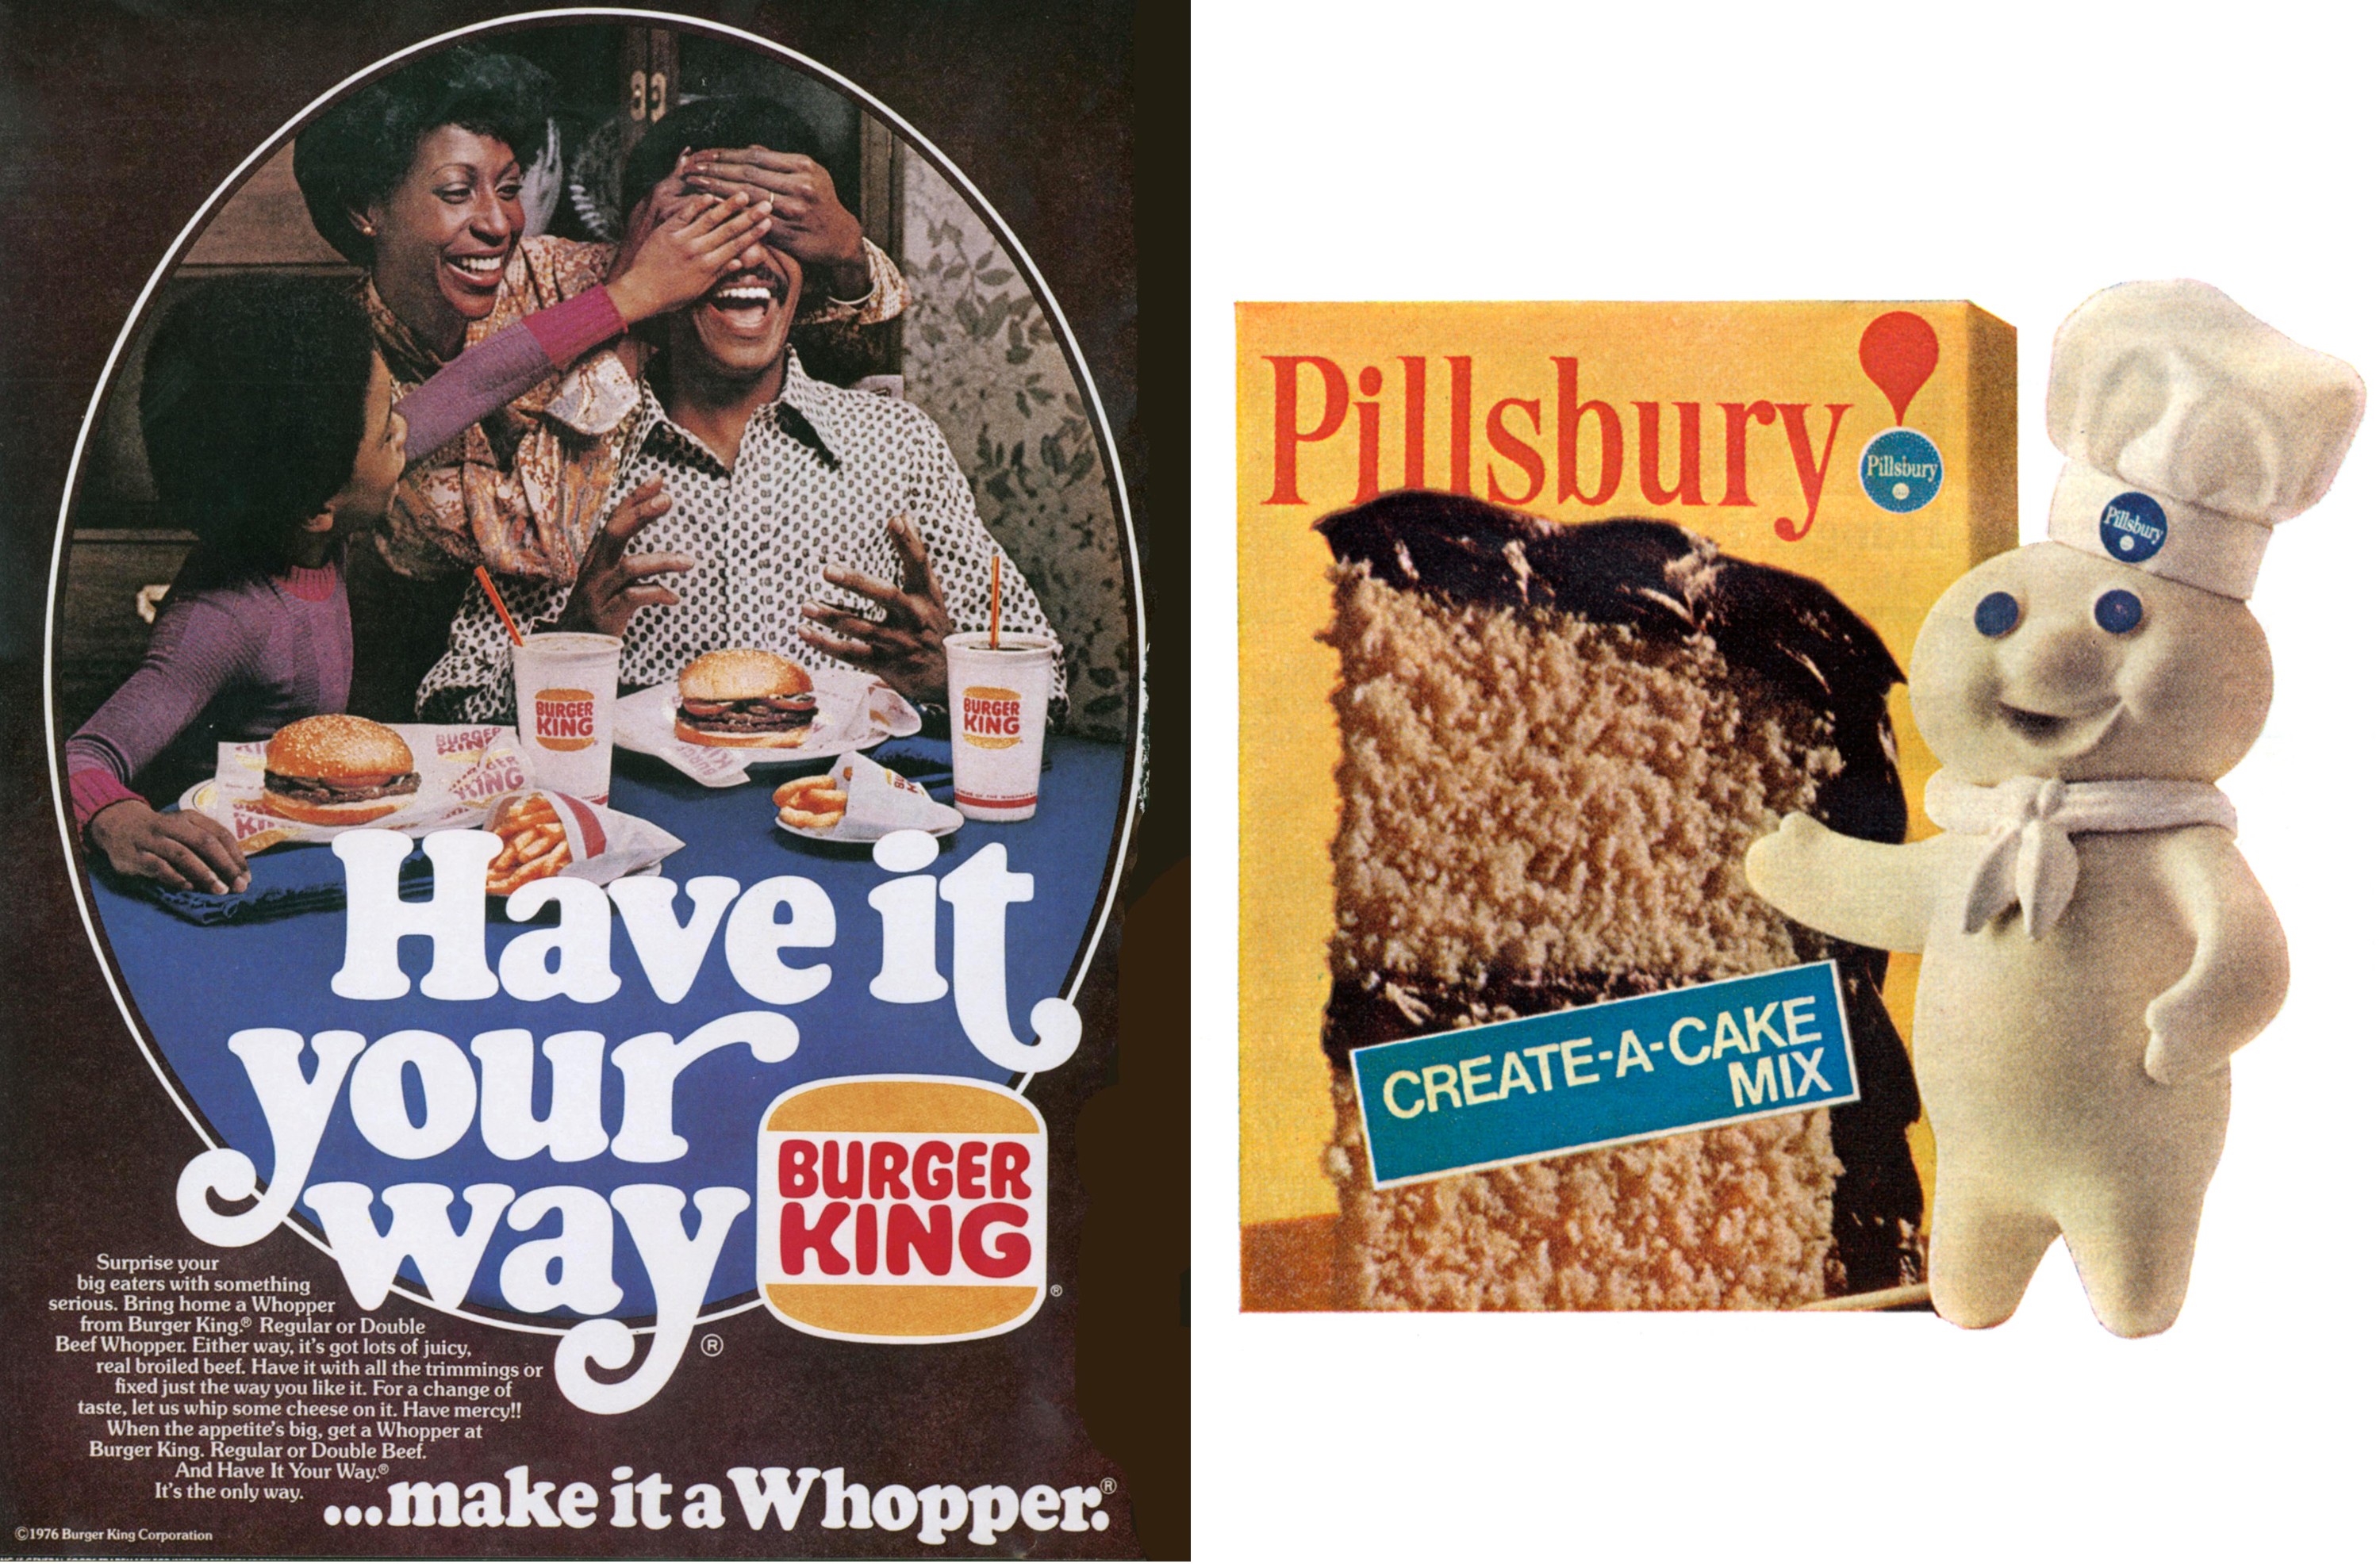 """SWALLOWED UP BY PILLSBURY                                                                                      In 1967, the Burger King Corporation was acquired by the Pillsbury Company. During its years under the Doughboy, the company debuted its famous """"Have it Your Way"""" ad campaign."""